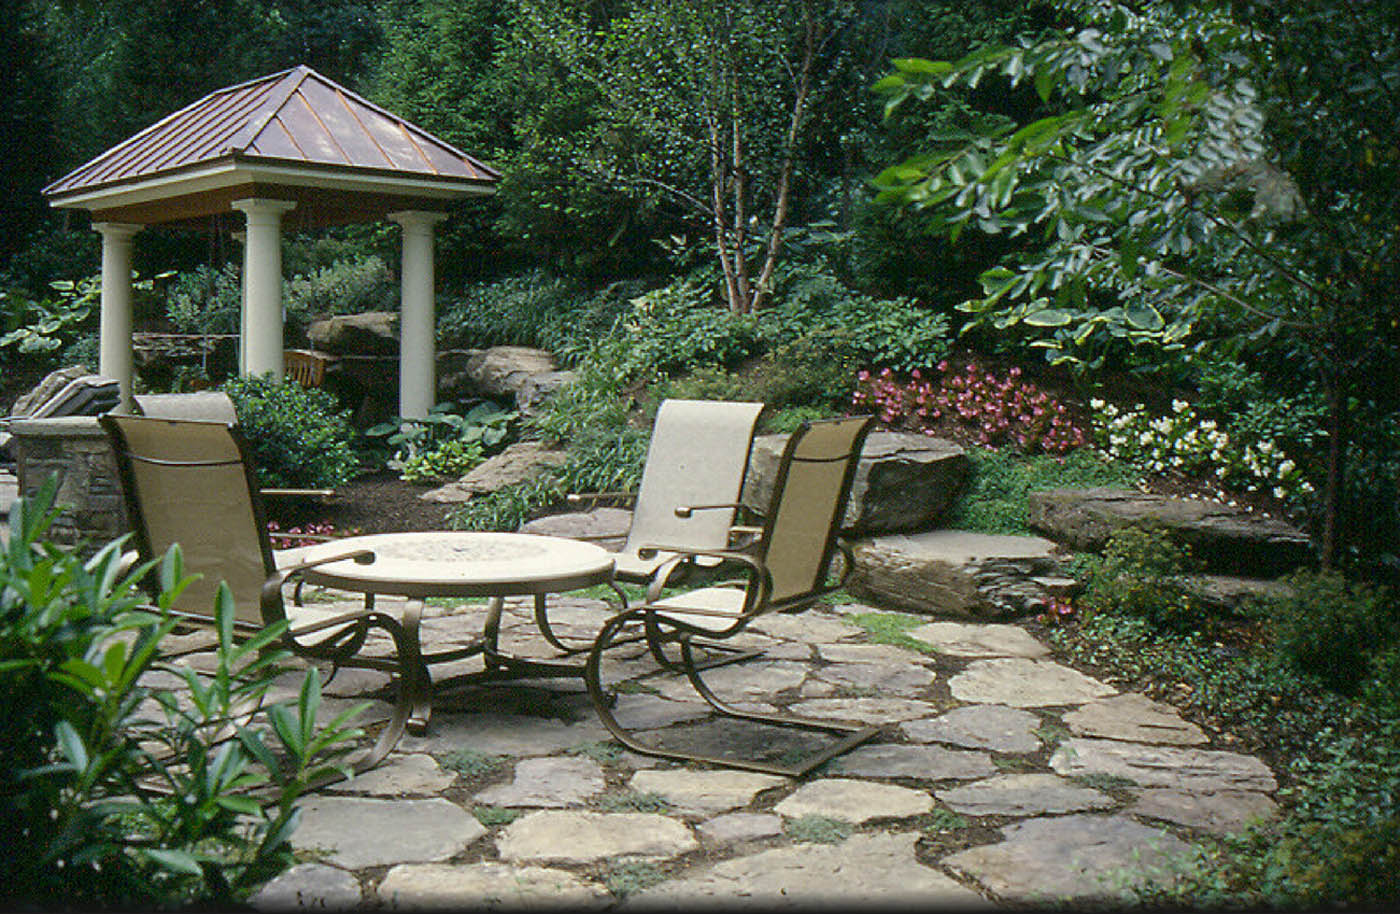 com hobsonlandscapes carpentry pergola edited patio with stone